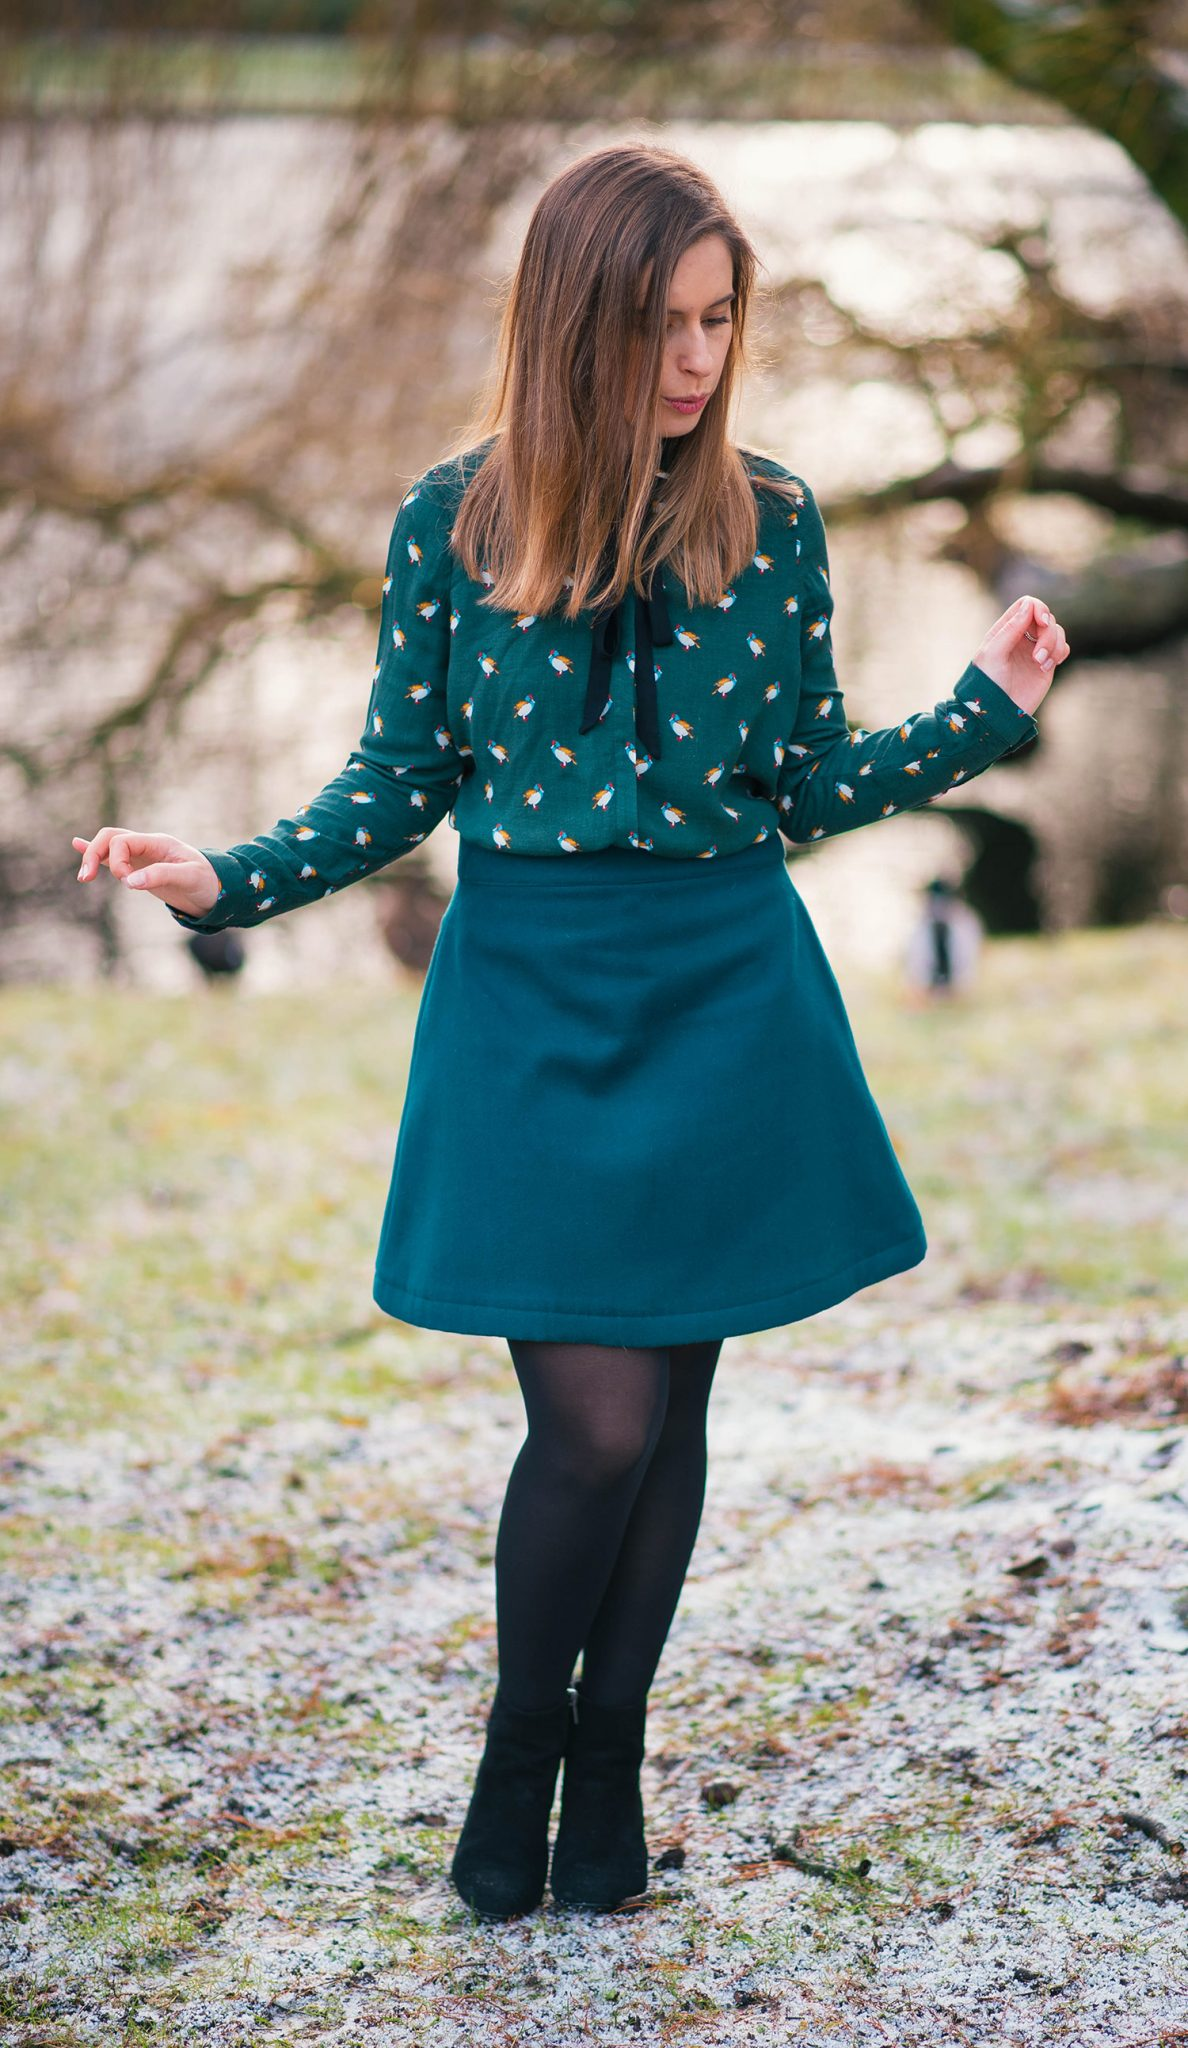 duck-tales-thepetitecat-outfit-inspiration